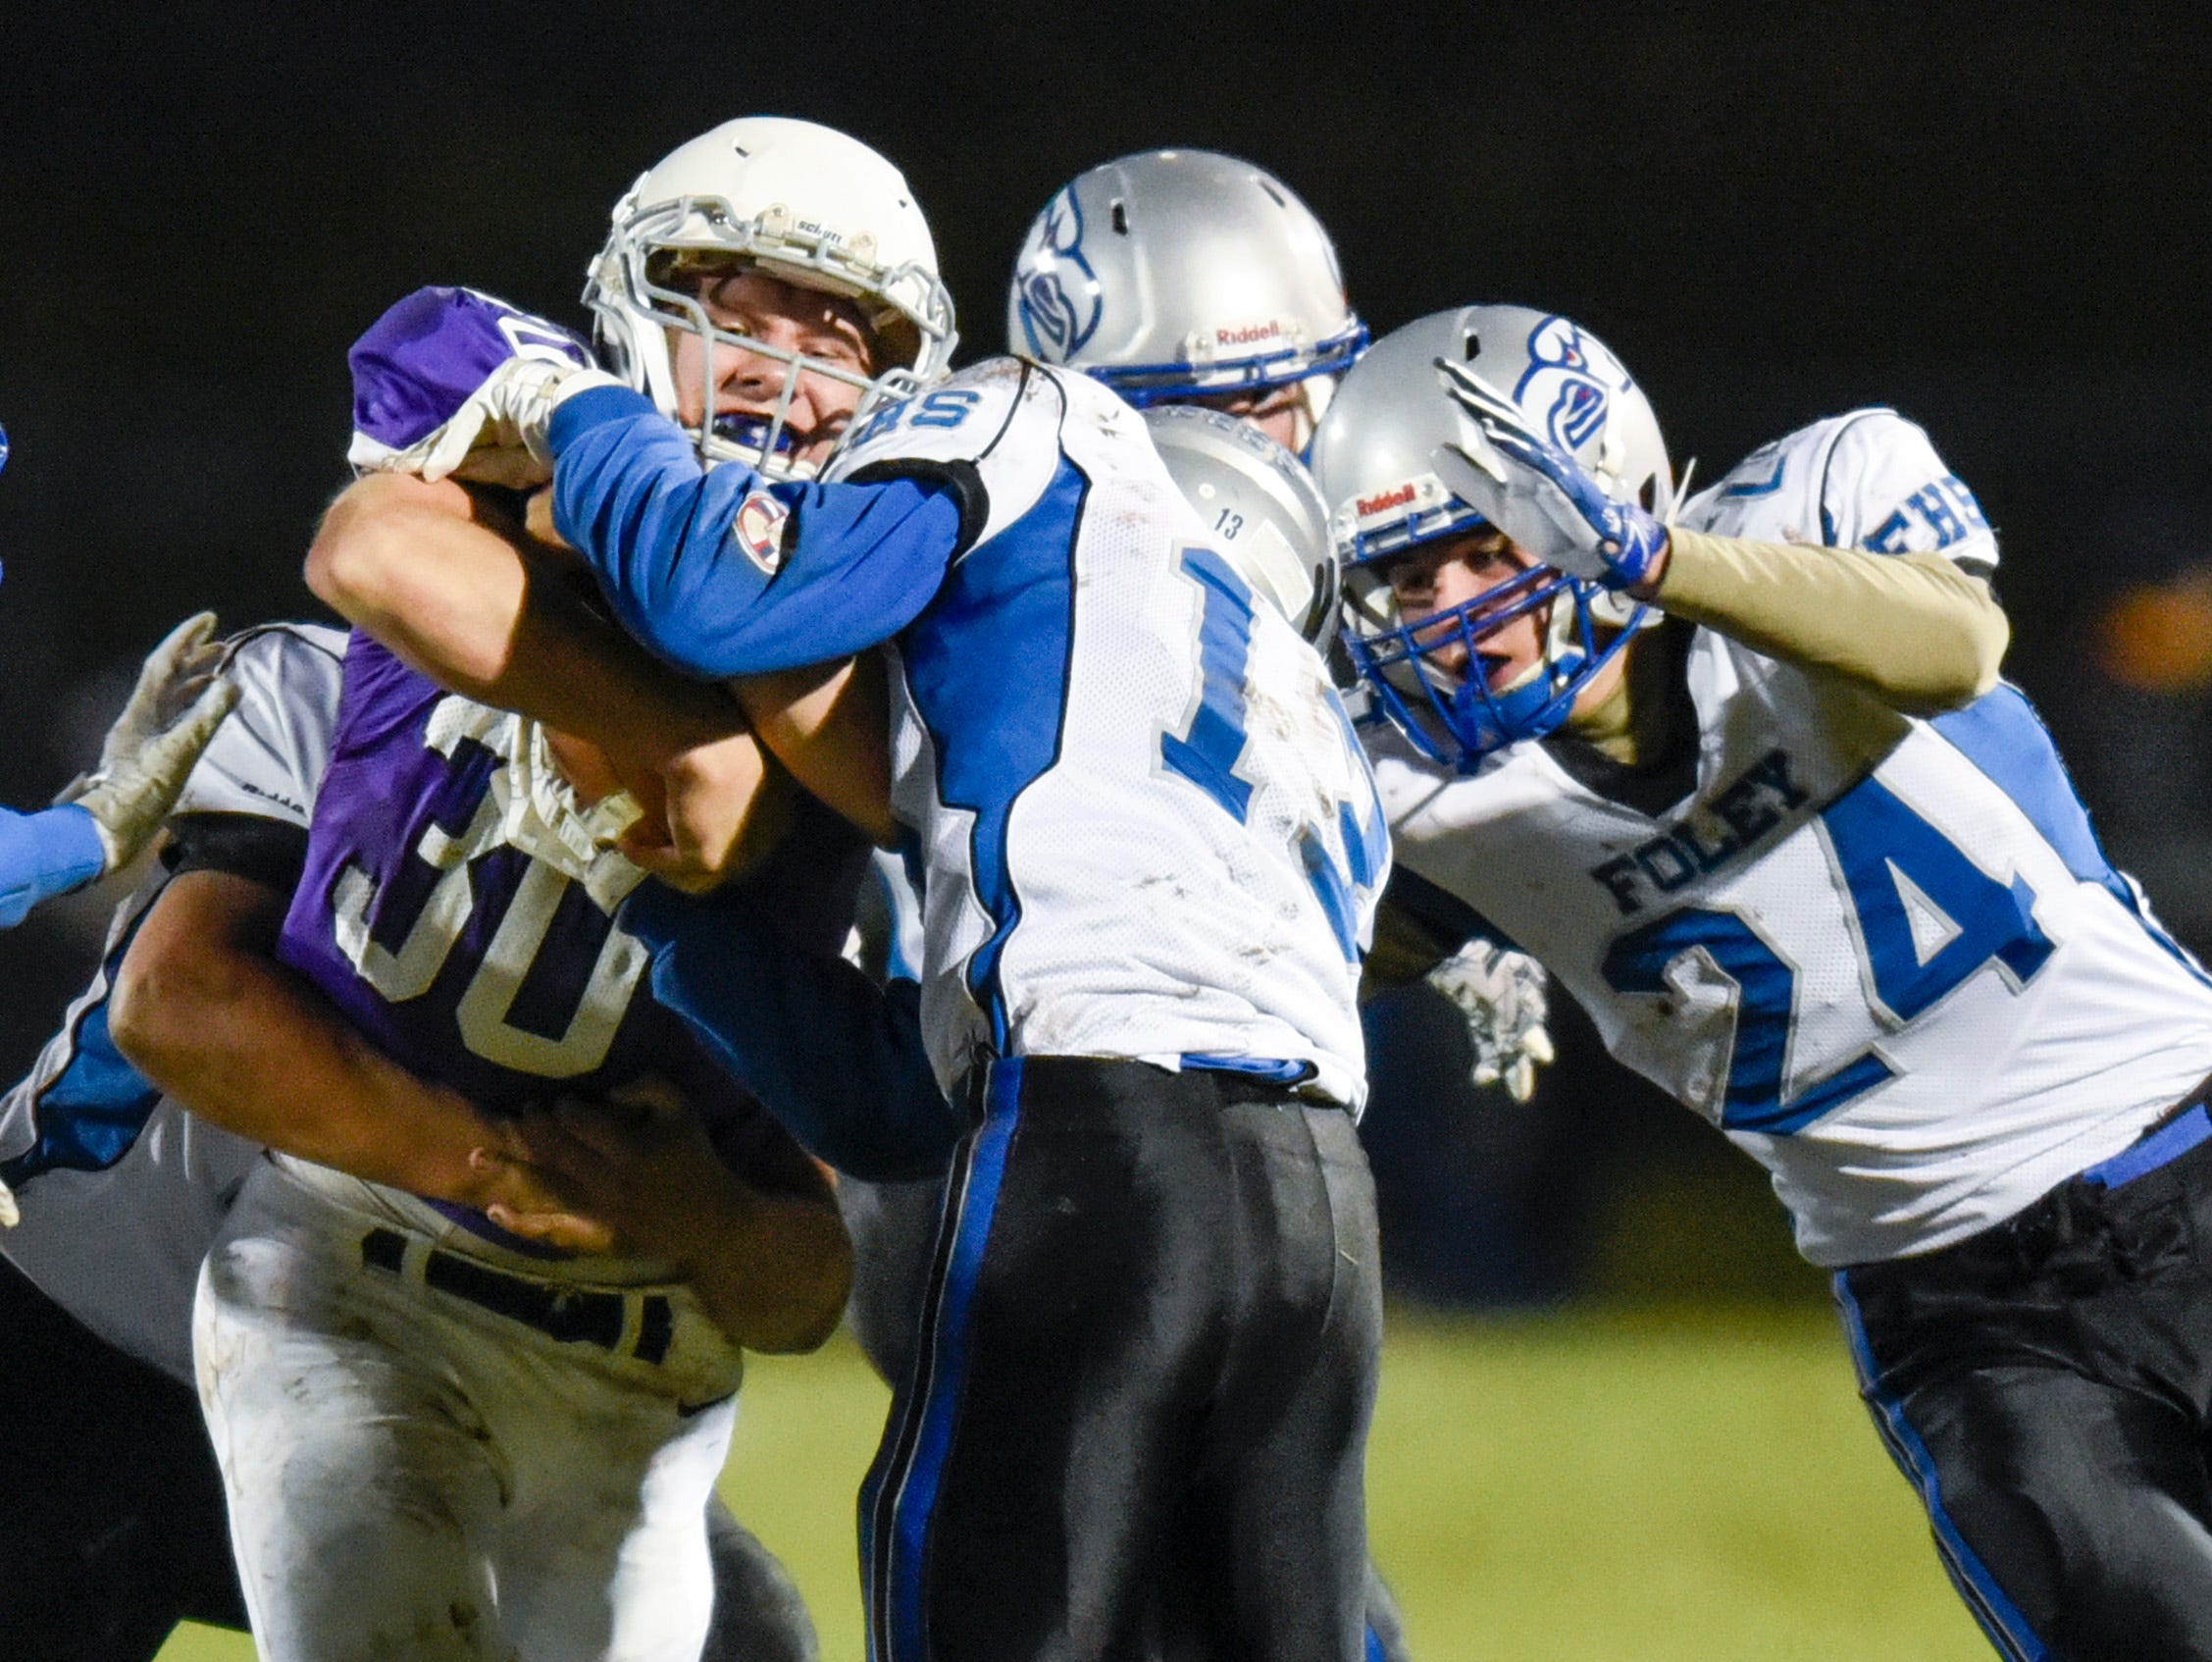 Albany's Gabe Zierden is brought down by the Foley defense during the first half Friday, Oct. 12, in Albany.